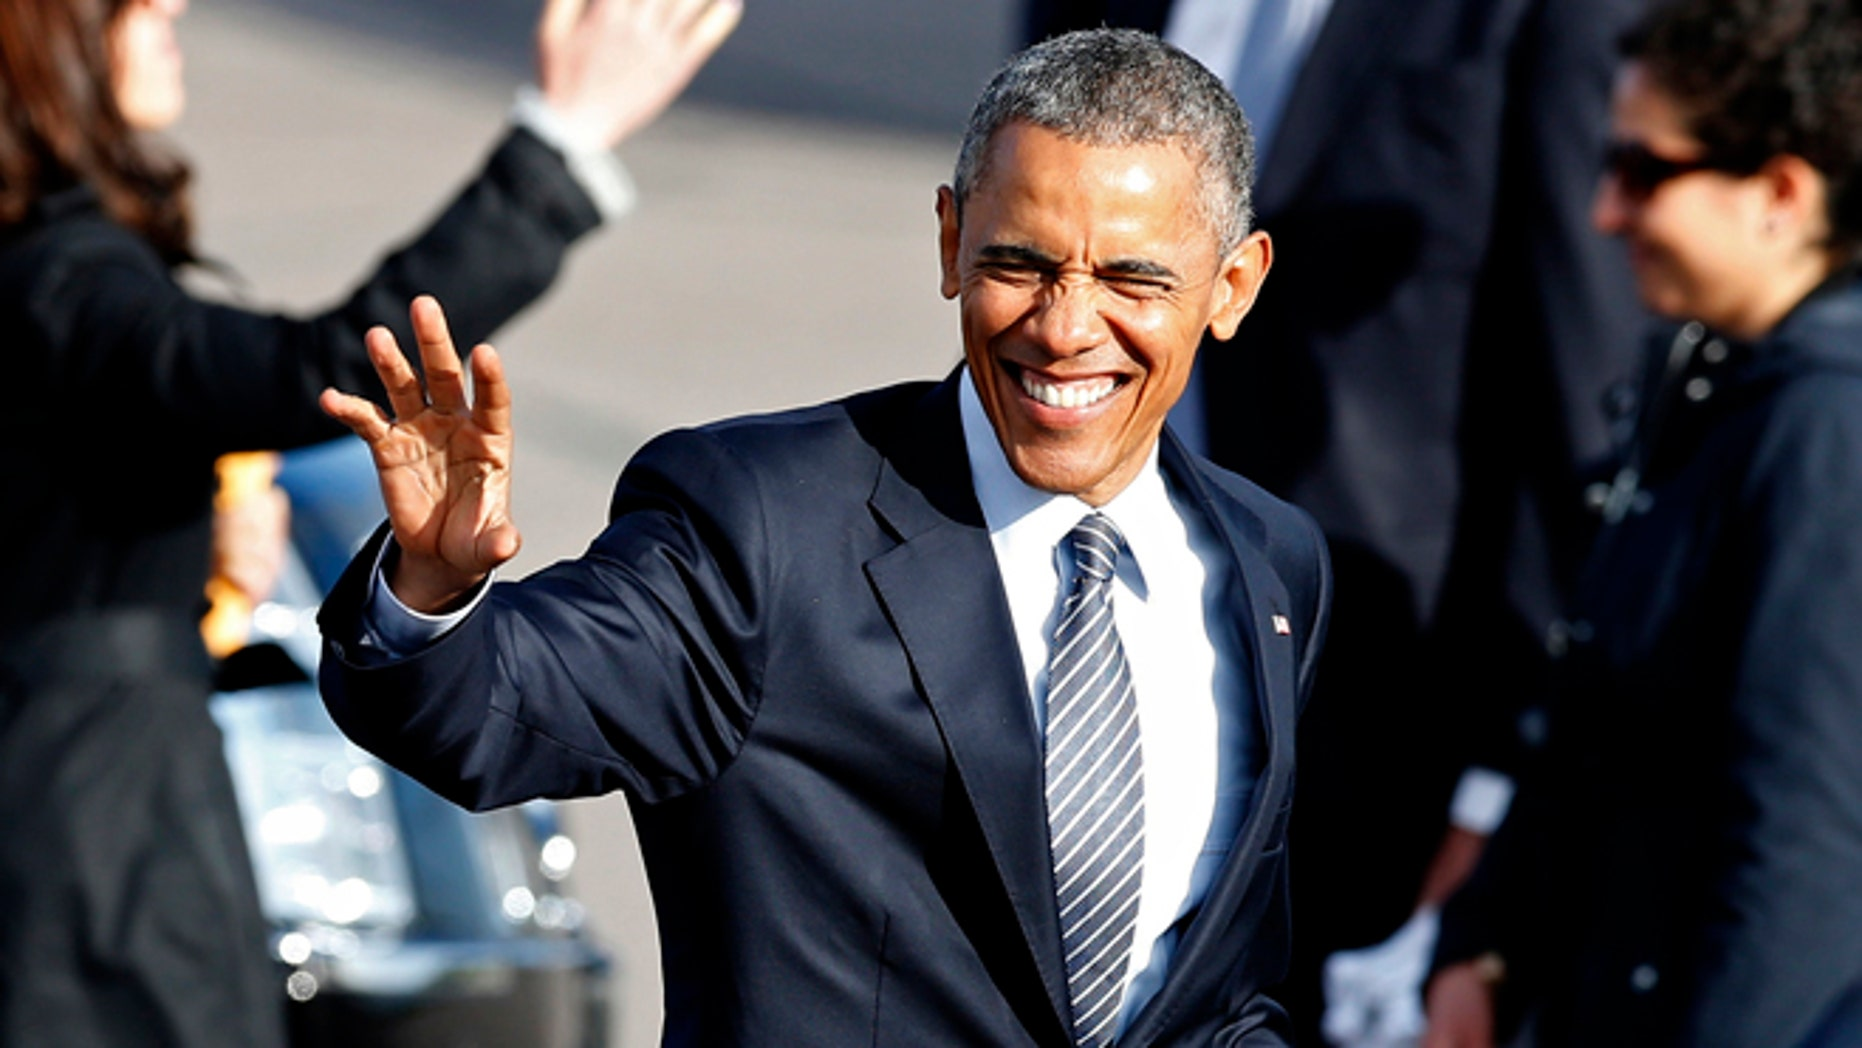 May 8, 2015: President Obama waves to supporters before leaving the Watertown Regional Airport in Watertown, S.D., where he gave a commencement address at a community college. (AP)